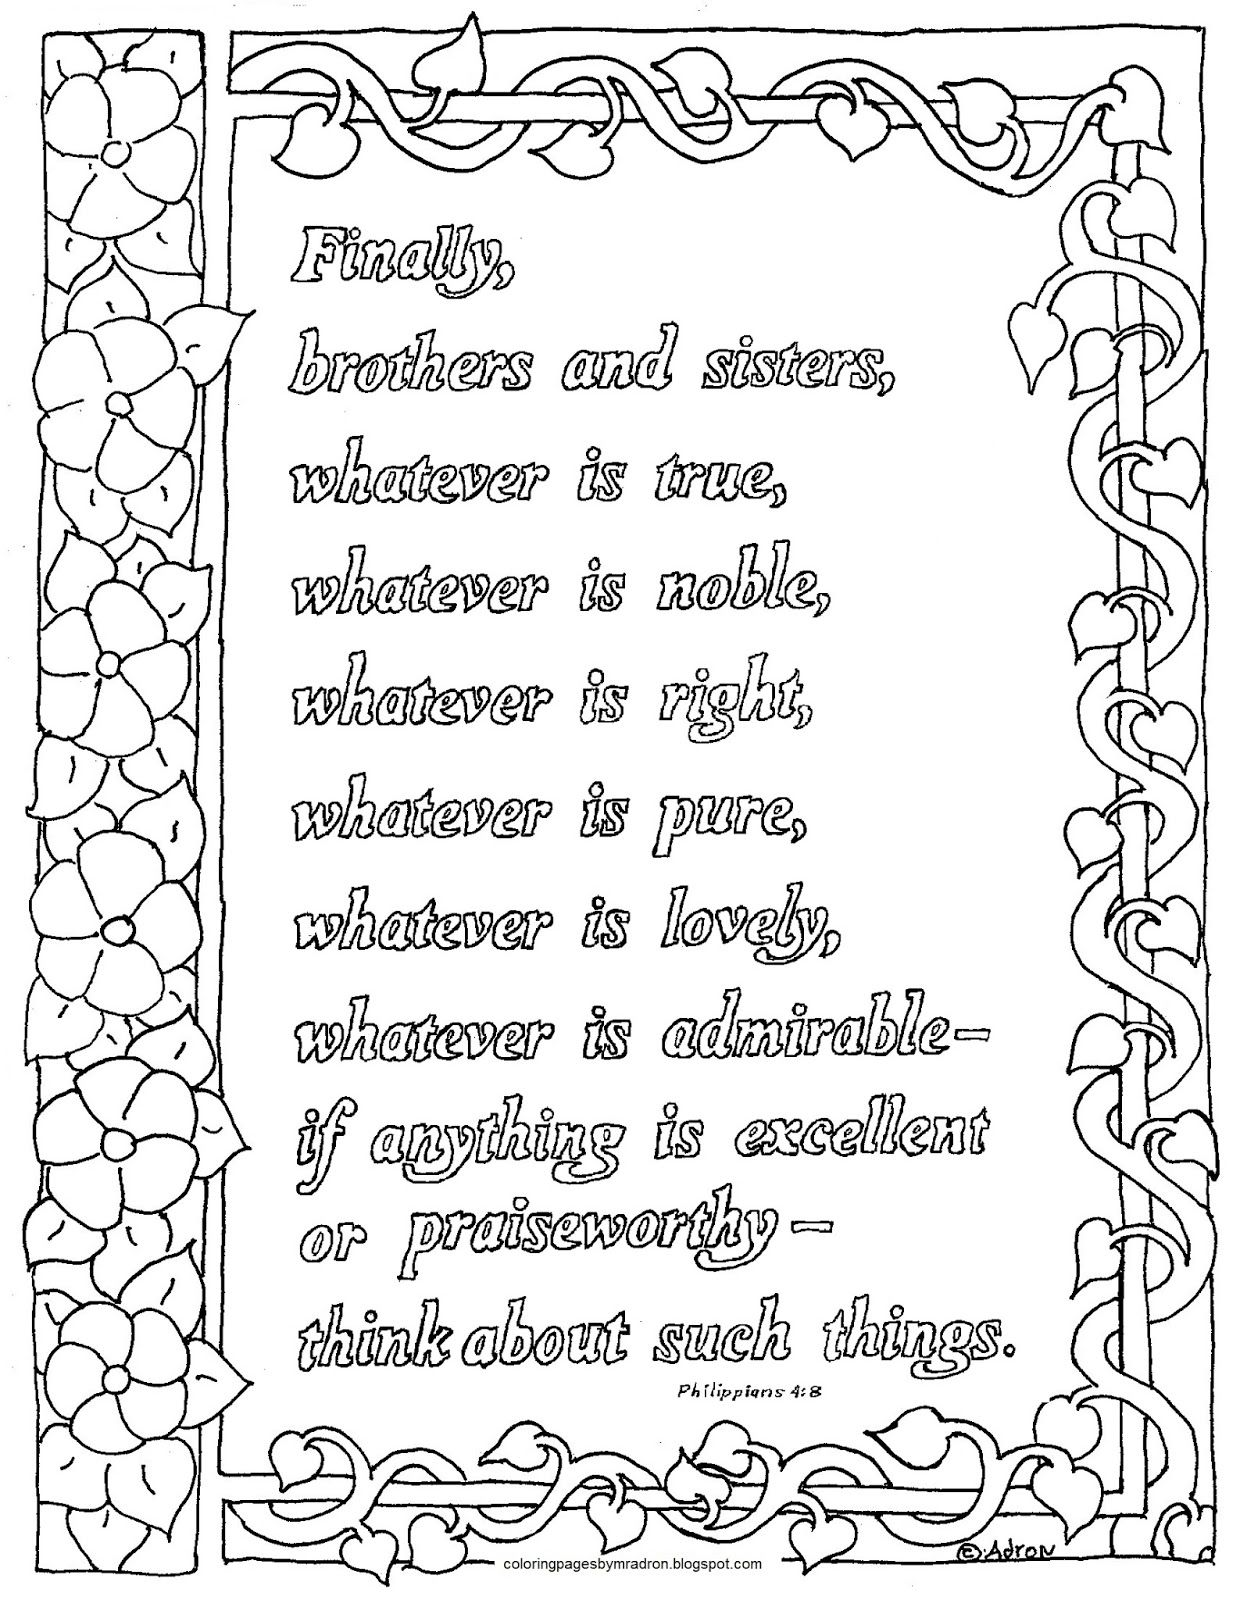 Philippians 4 8 Print And Color Page This Free Bible Verse Coloring Page Is Not Just For Kids